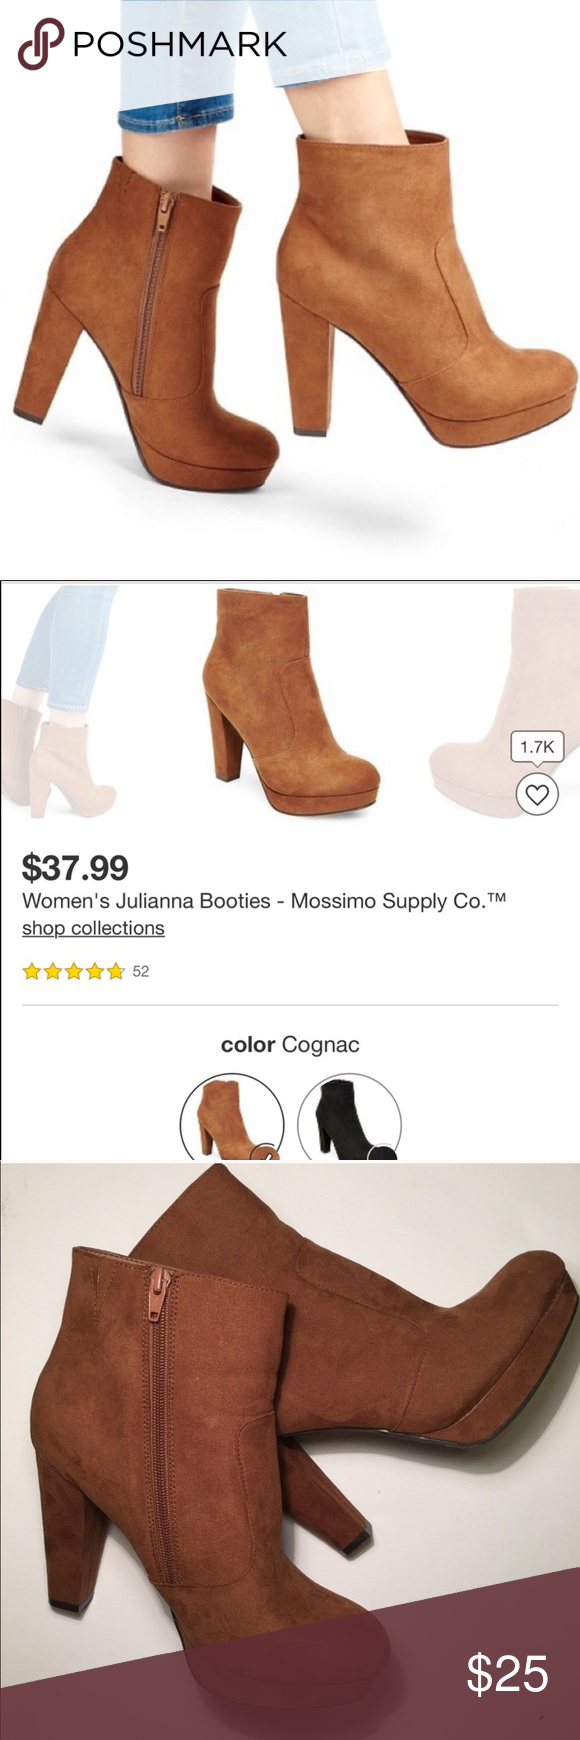 62c0896318f8 Like new Merona Julianna Ankle boots Cognac brown Worn once Size 8 From  Merona by Target Beautiful and comfy Merona Shoes Ankle Boots   Booties